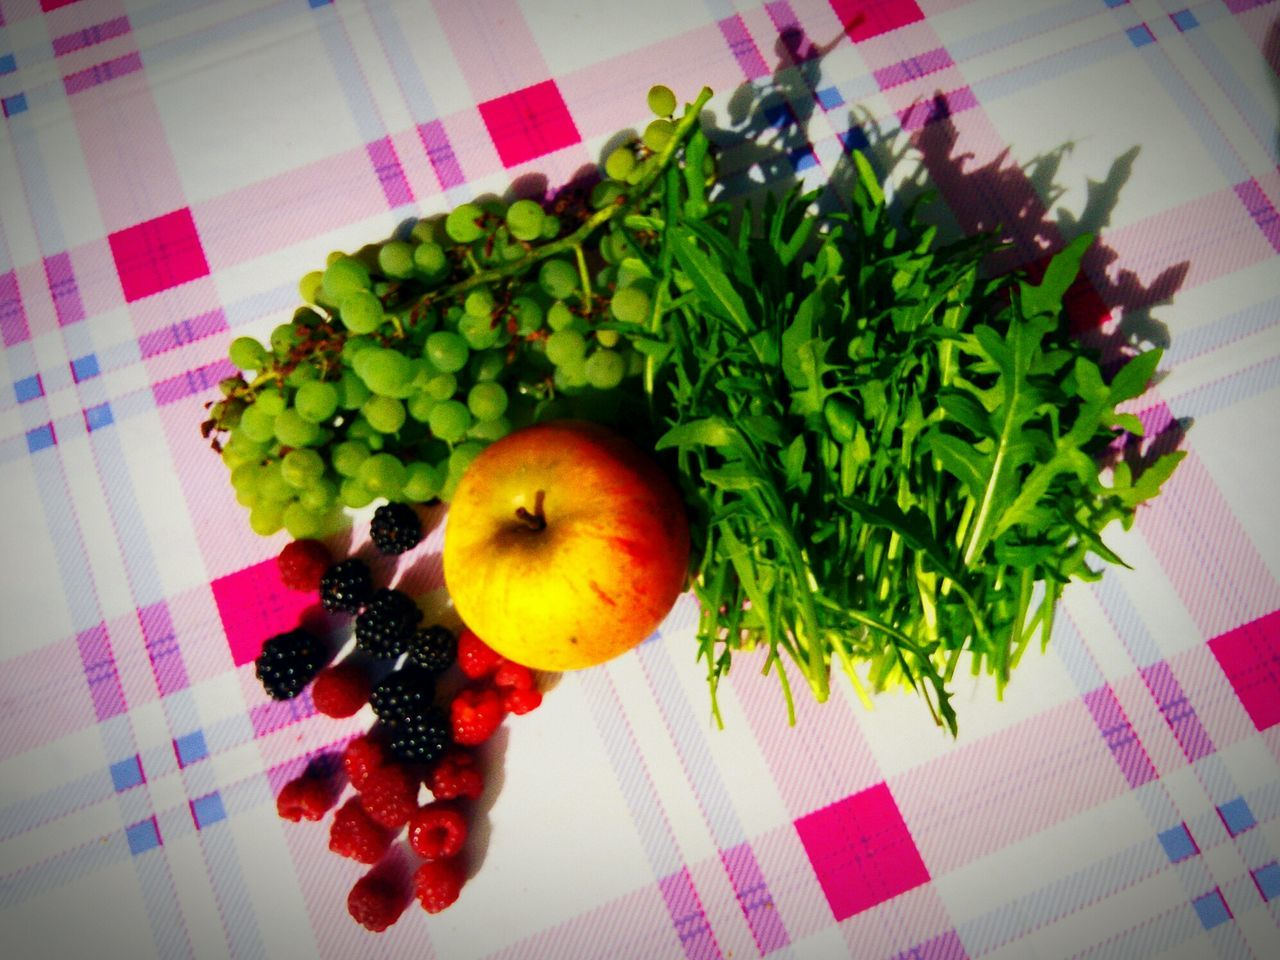 Garden Harvest Flower High Angle View Ready-to-eat Rucola A Bird's Eye View Rasberries Blackberries Grapes Apple Harvest Time EyeEm Best Edits Large Group Of Objects Rocketleaves Green Vegetables